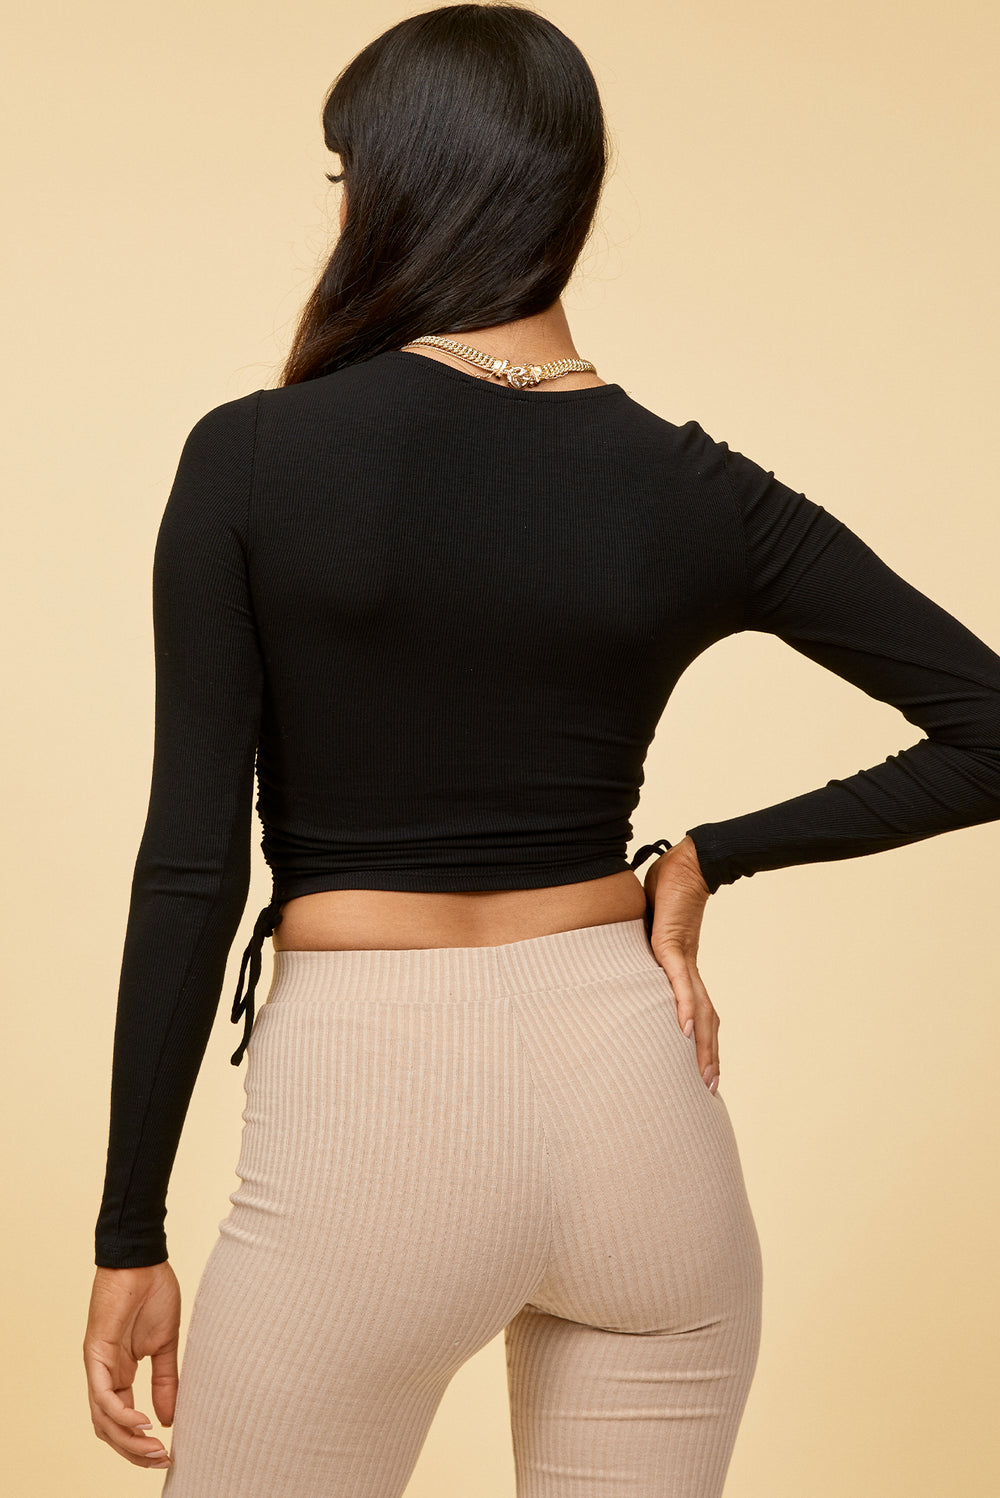 black long sleeve top, long sleeve crop top, black crop top